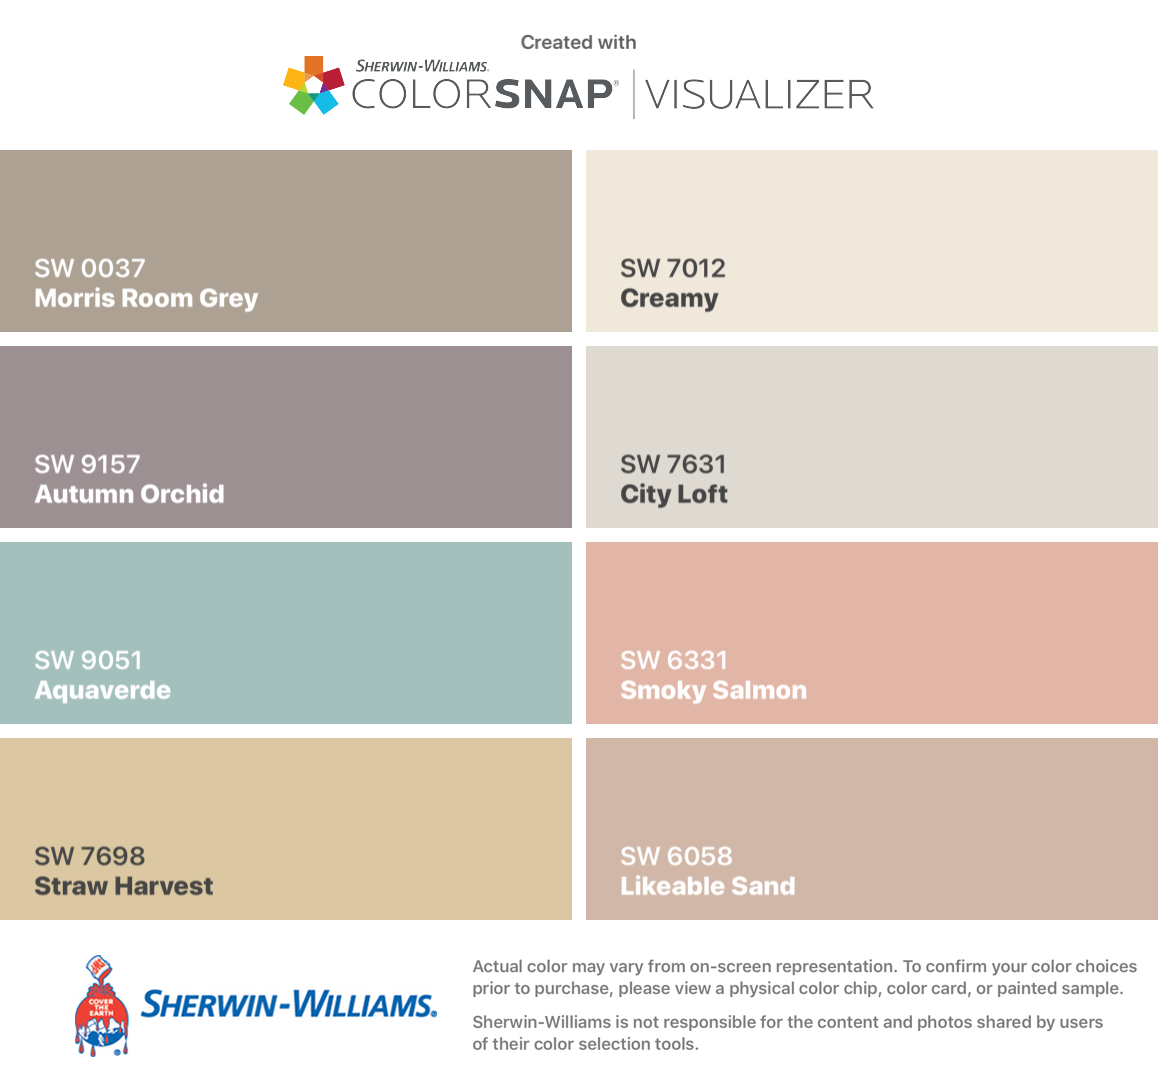 I found these colors with ColorSnap® Visualizer for iPhone by Sherwin-Williams: Morris Room Grey (SW 0037), Autumn Orchid (SW 9157), Aquaverde (SW 9051), Straw Harvest (SW 7698), Creamy (SW 7012), City Loft (SW 7631), Smoky Salmon (SW 6331), Likeable Sand (SW 6058). #cityloftsherwinwilliams